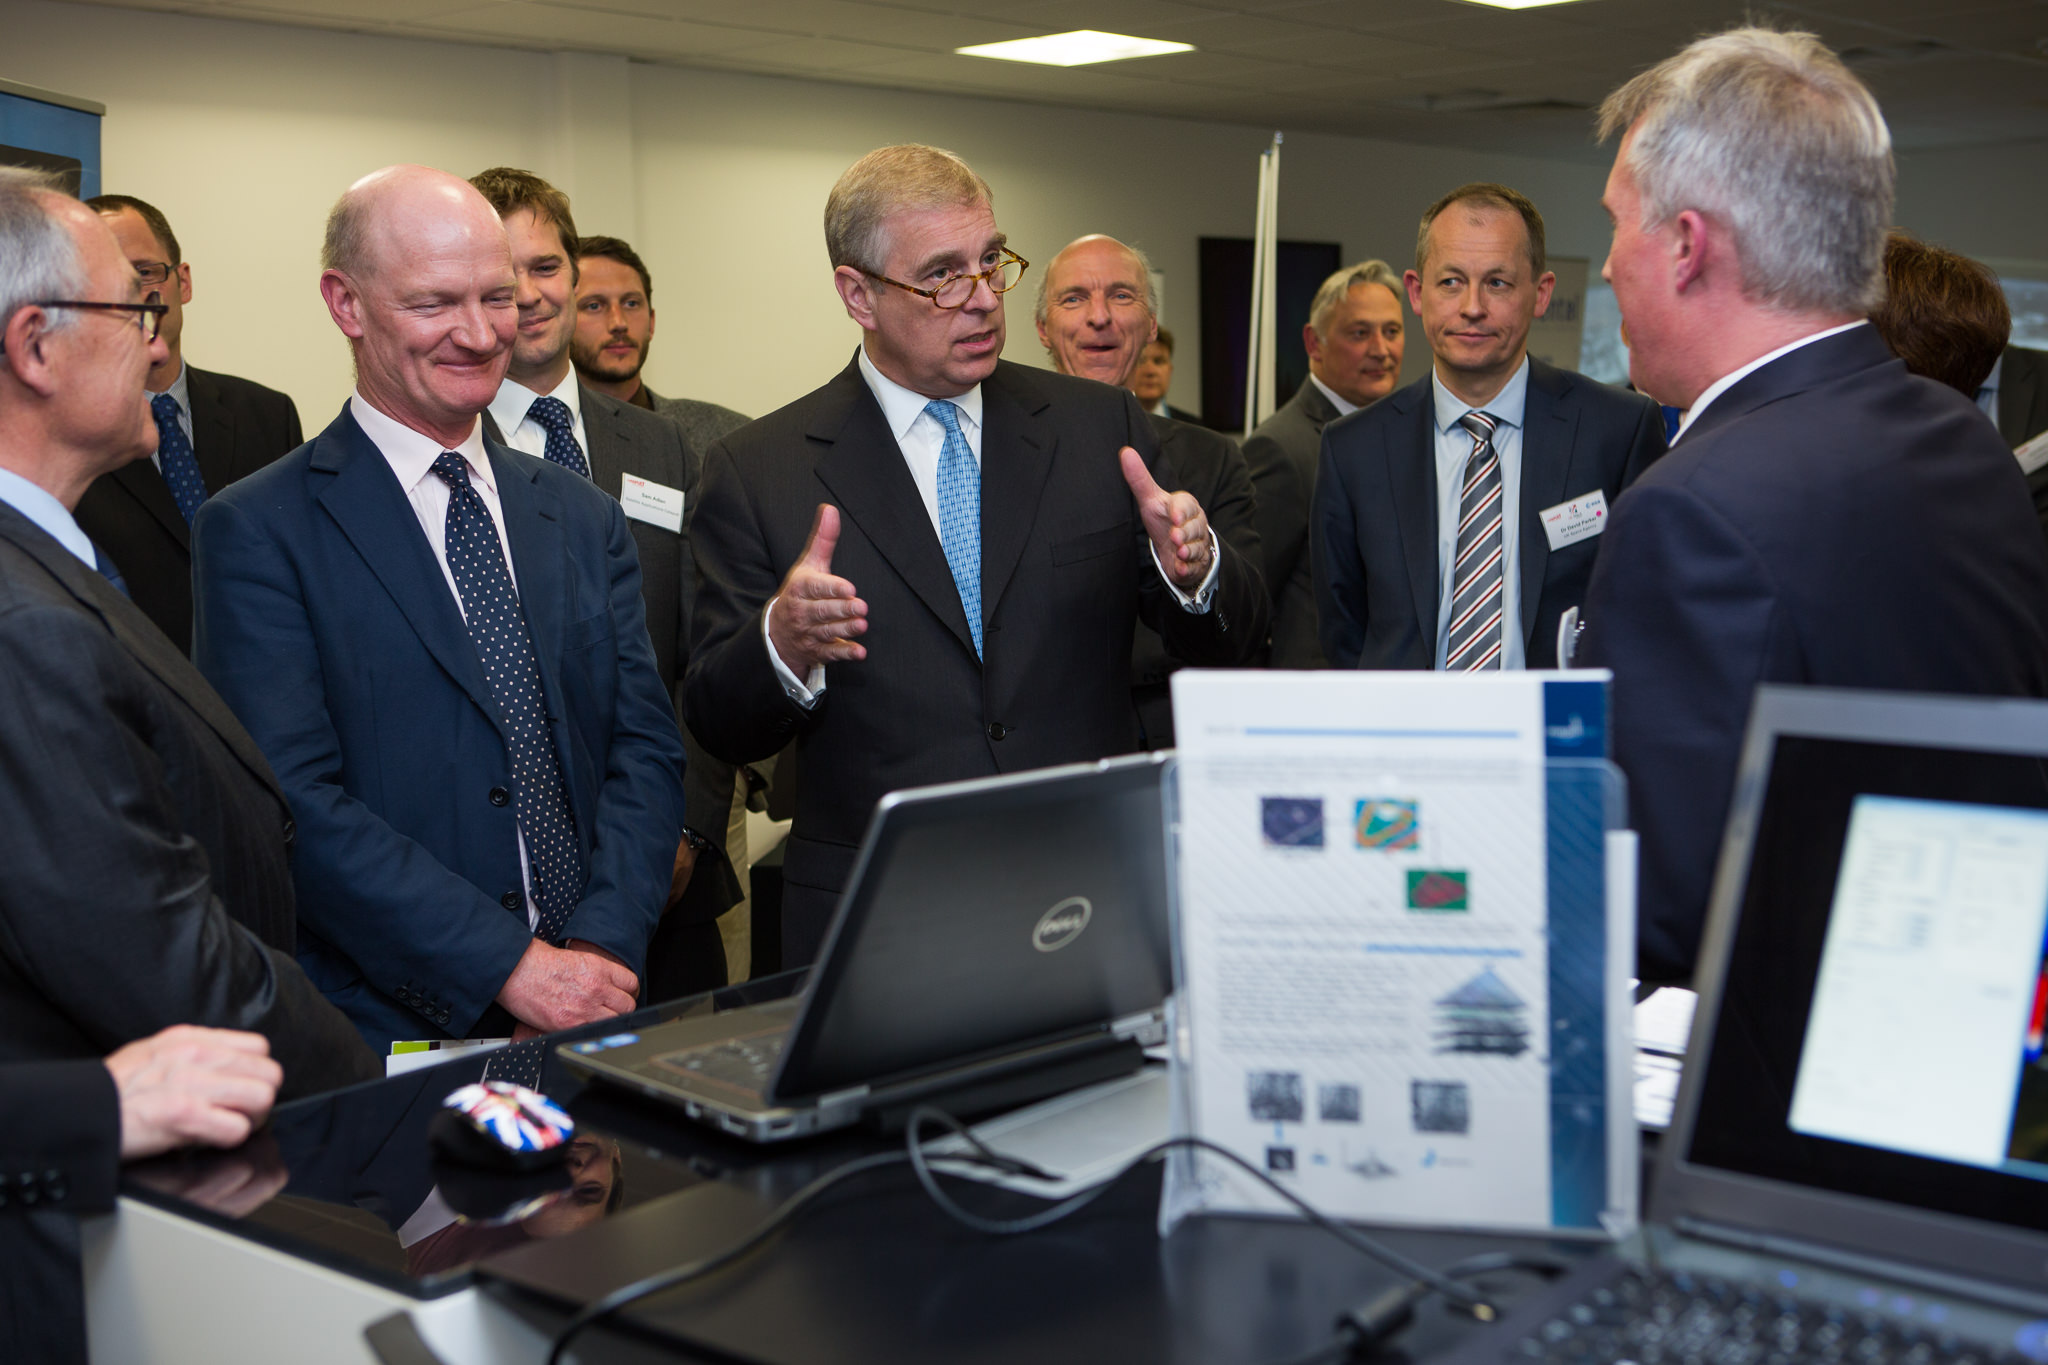 Event-Photography-HRH-Prince-Andrew-And-David-Willets